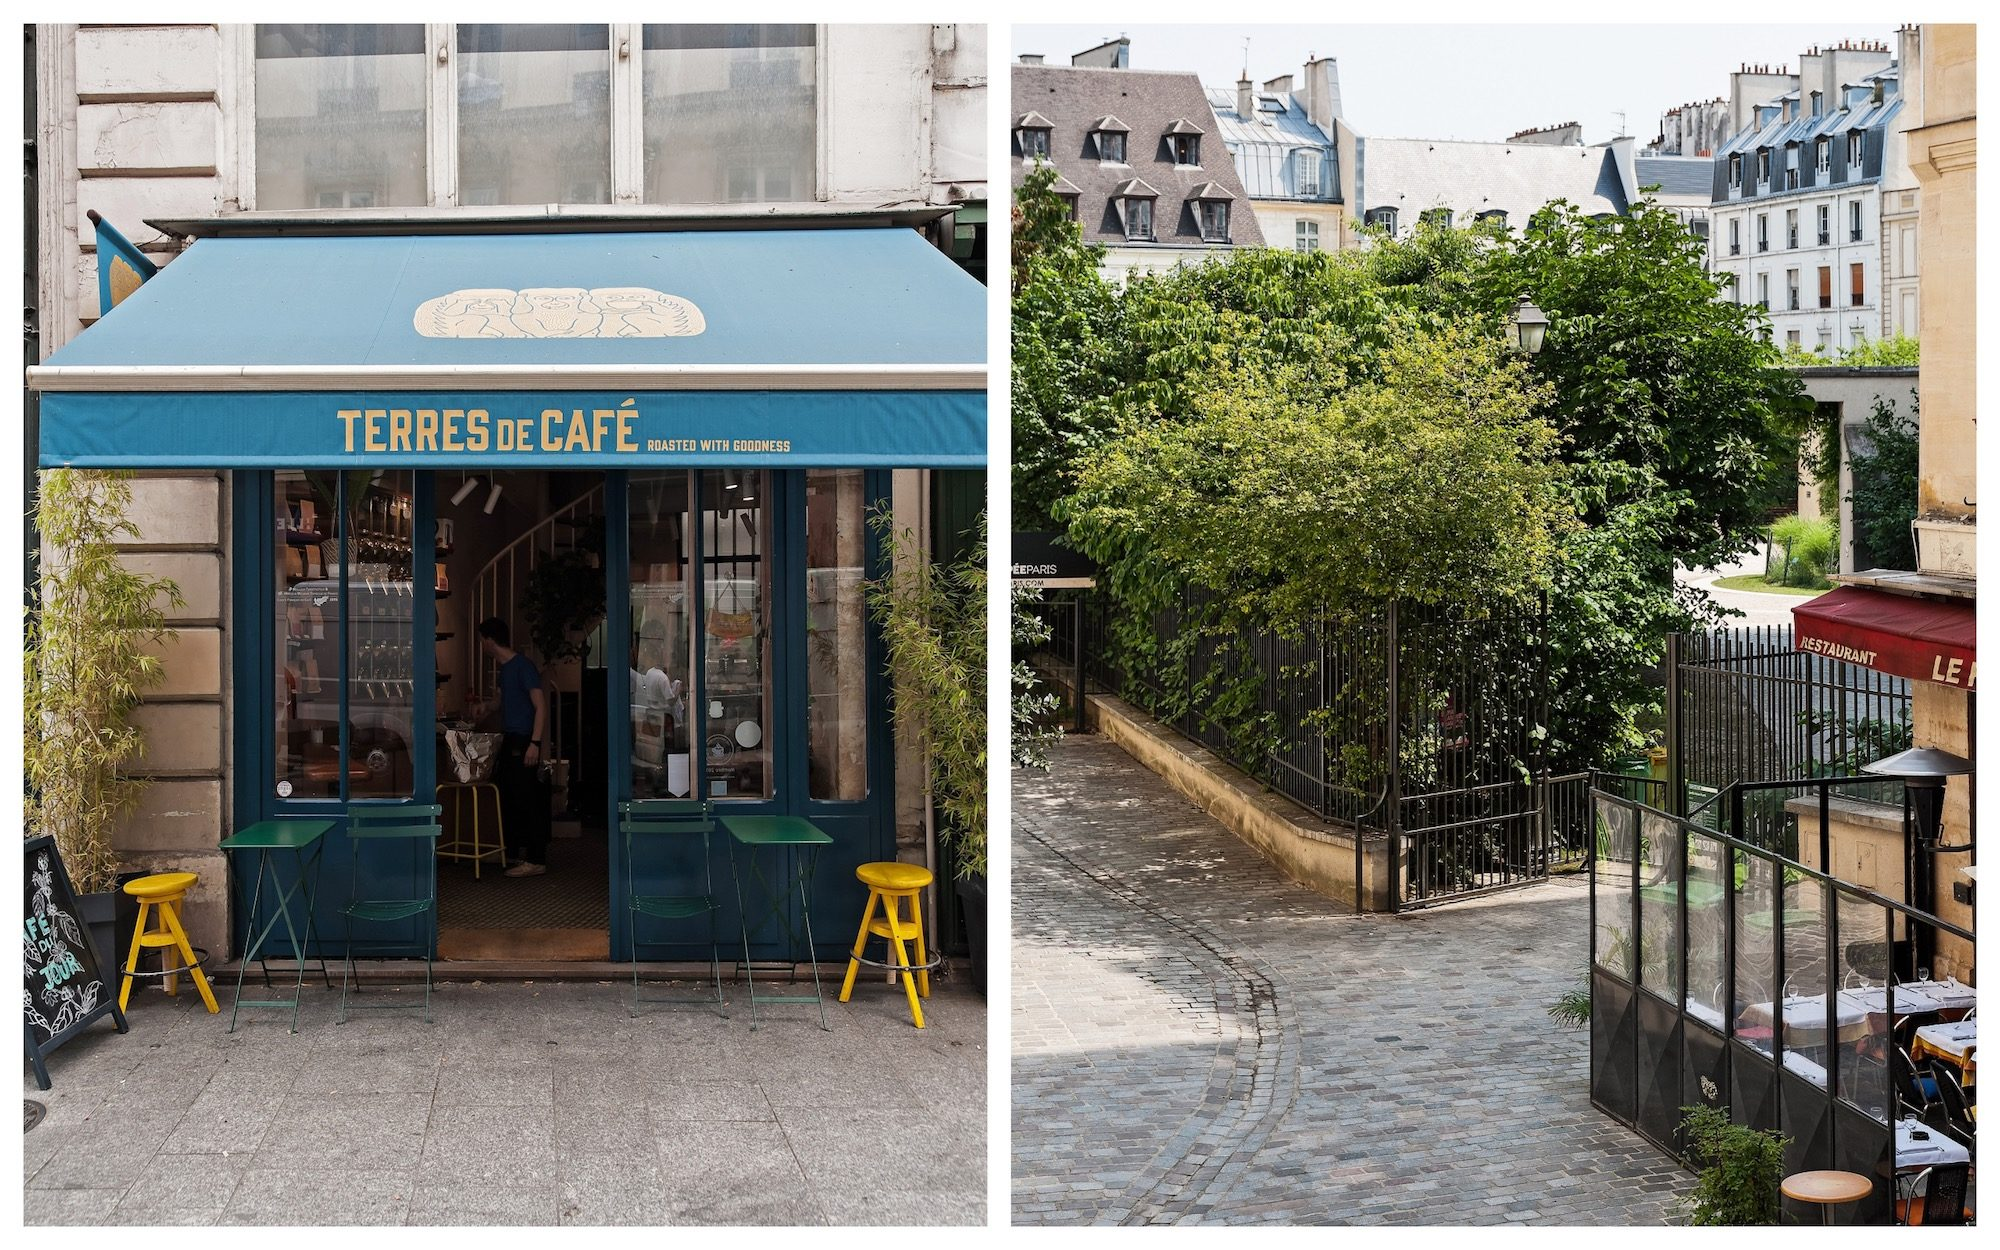 Paris is full of craft coffee shops like Terres de Café (left) and leafy hidden squares to explore on your next visit (right).